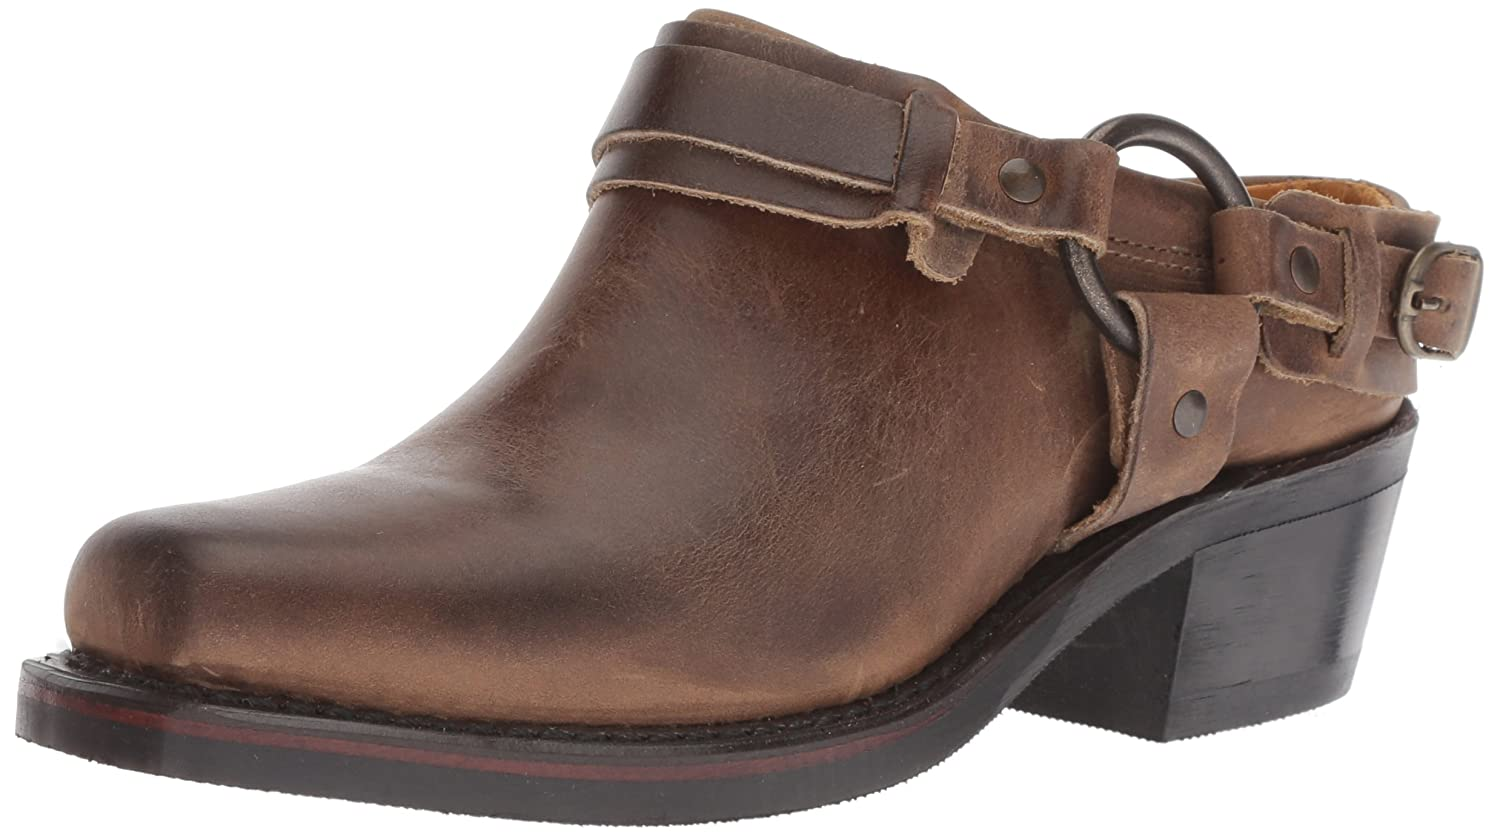 FRYE Women's Belted Harness Mule 70760